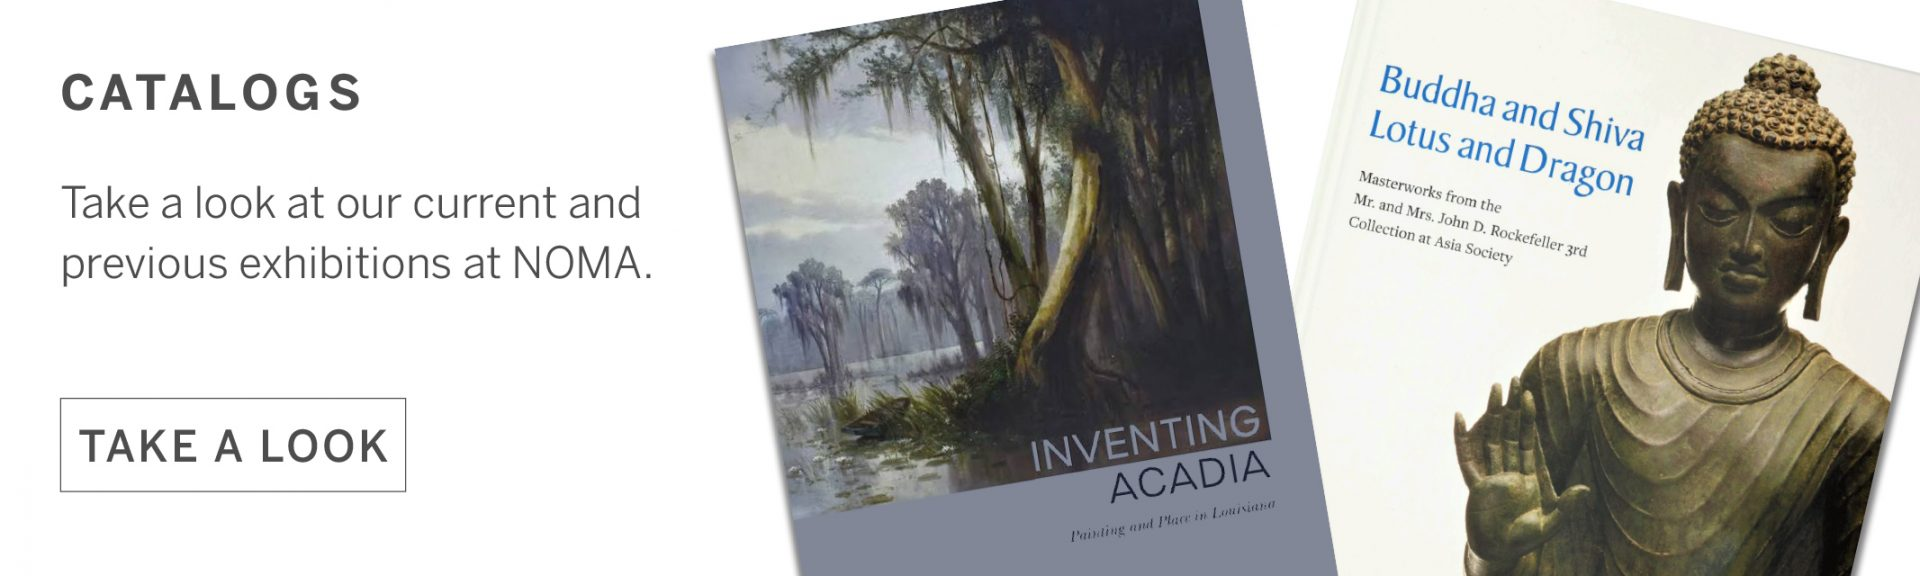 We stock books and catalogs covering the full history of art.